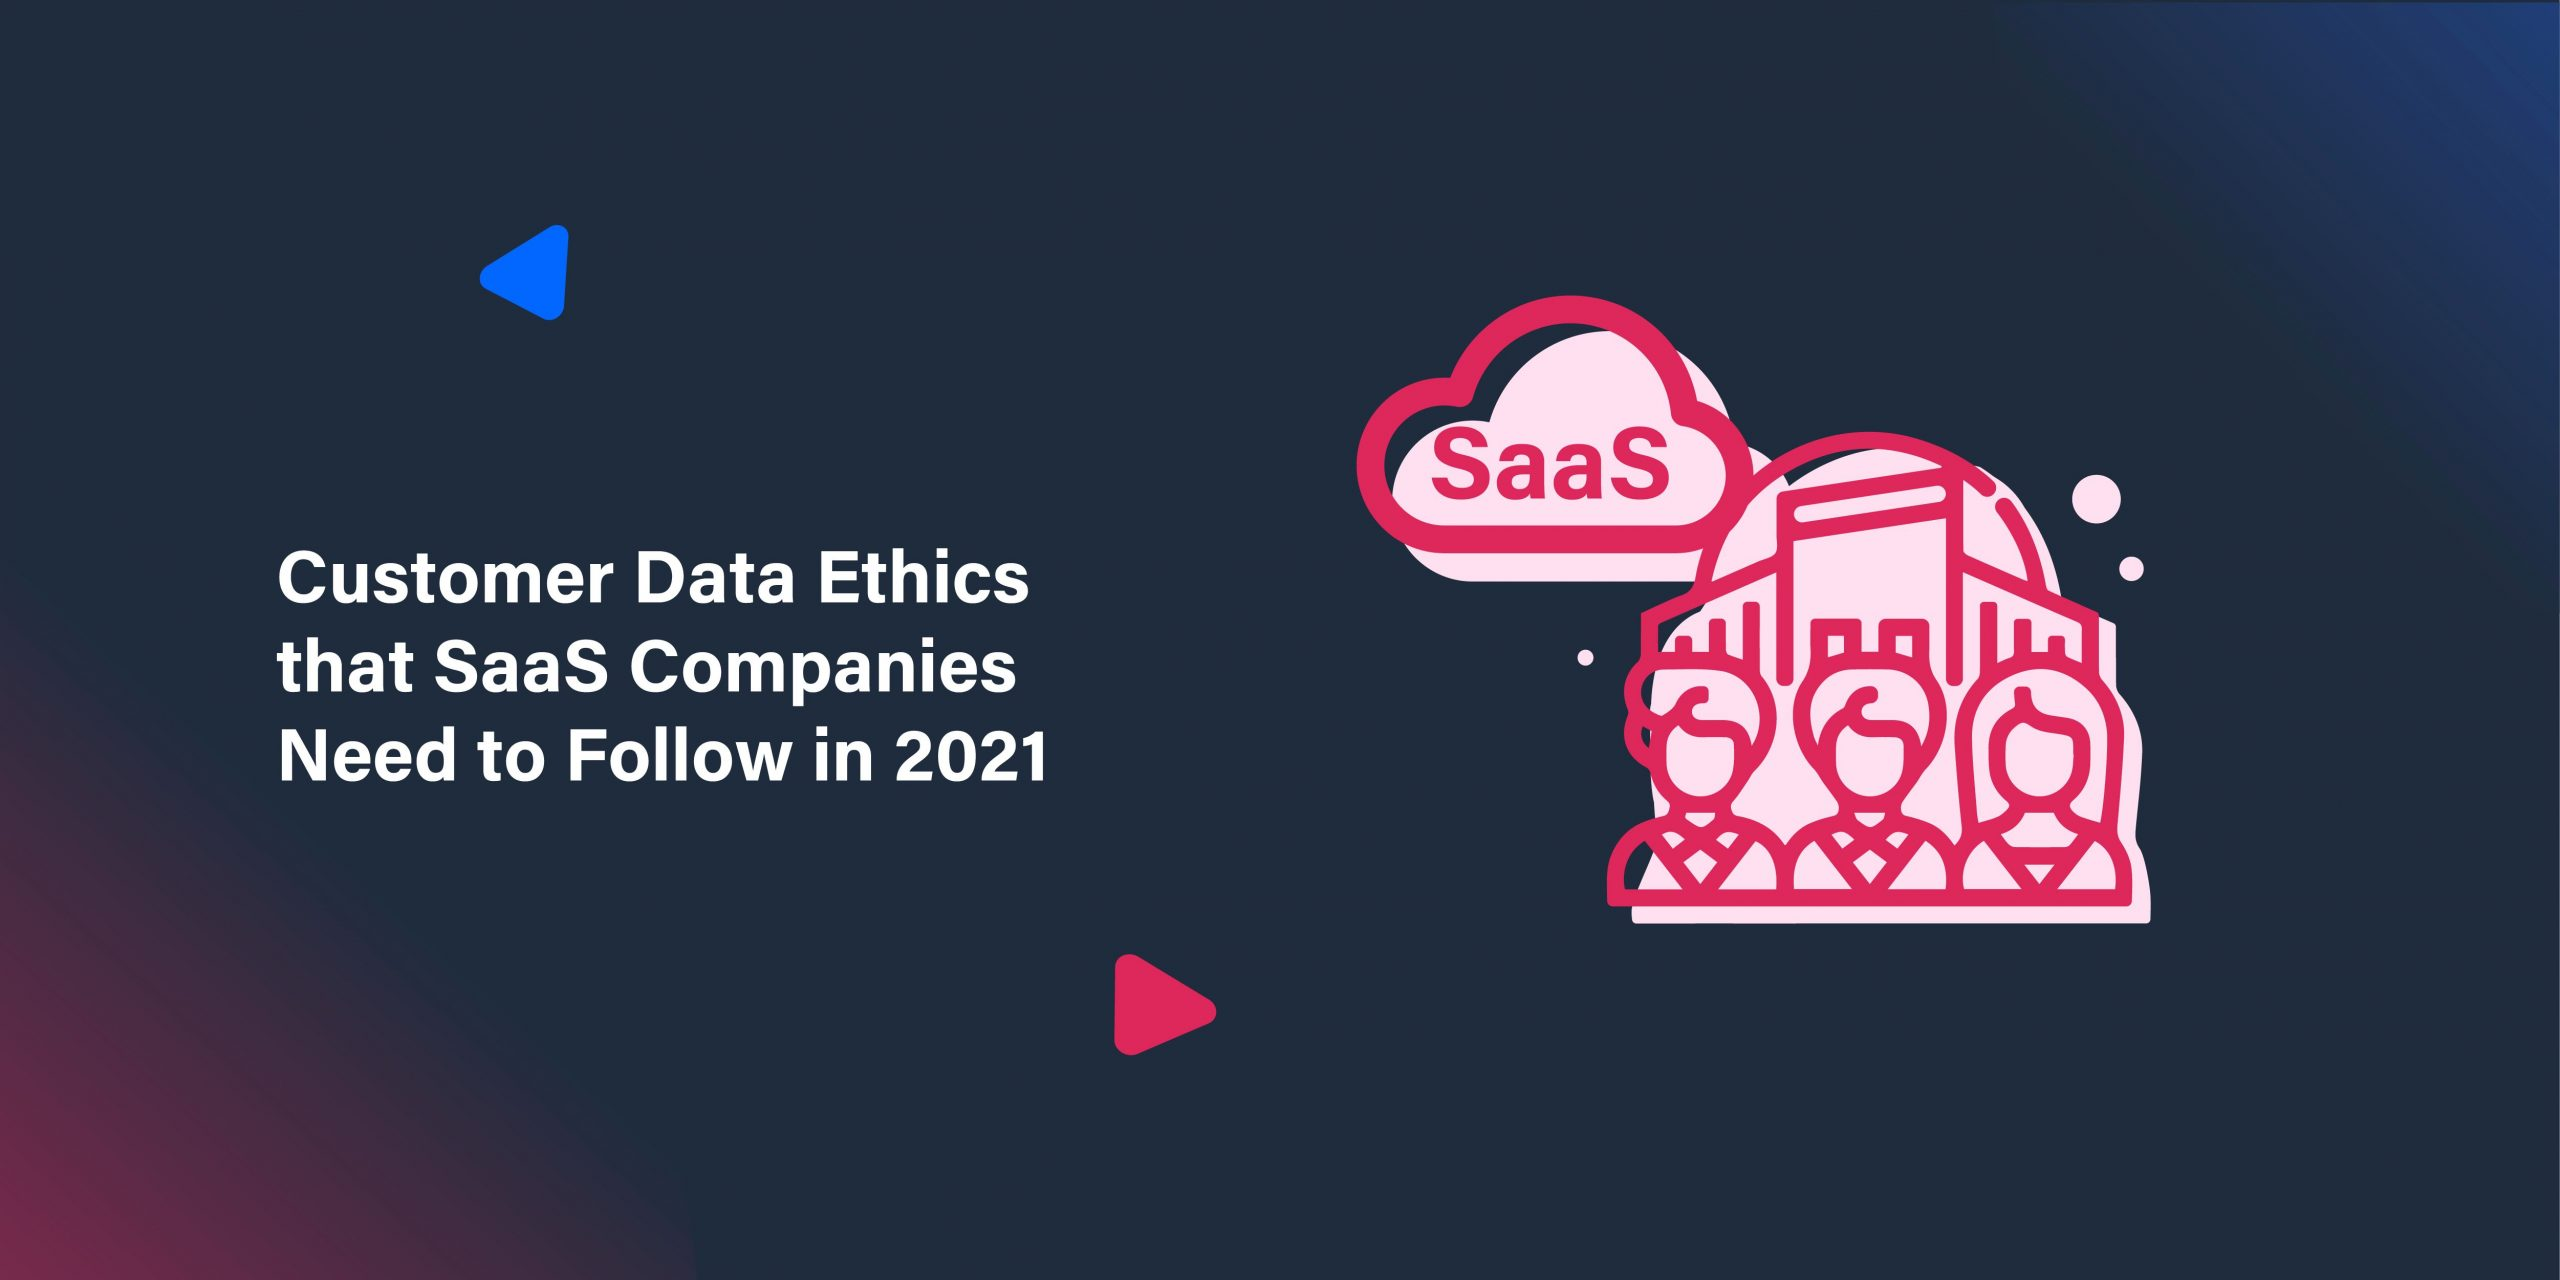 Customer%20Data%20Ethics%20that%20SaaS%20Companies%20Need%20to%20Follow%20in%202021